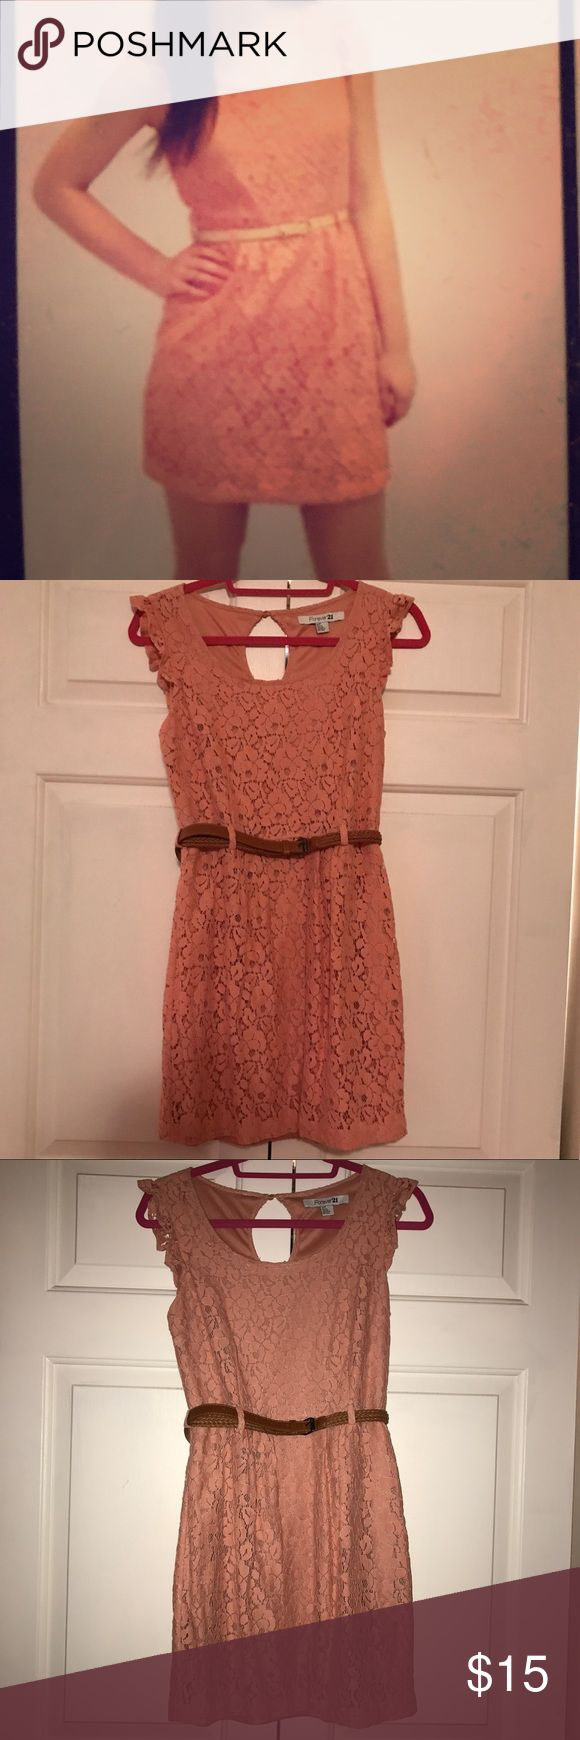 Forever 21 coral lace dress This cute dress was only worn one time! Cute coral lace material all over with cute ruffle detail on the strap. Has a zipper on the back and a keyhole cutout with a button. Belt included! (This is not the belt that came with the dress, but still goes really well).  Perfect for every day, going out for dinner, a party, or anything in between! Goes great with a cute pair of heels, flats, or sandals! Forever 21 Dresses